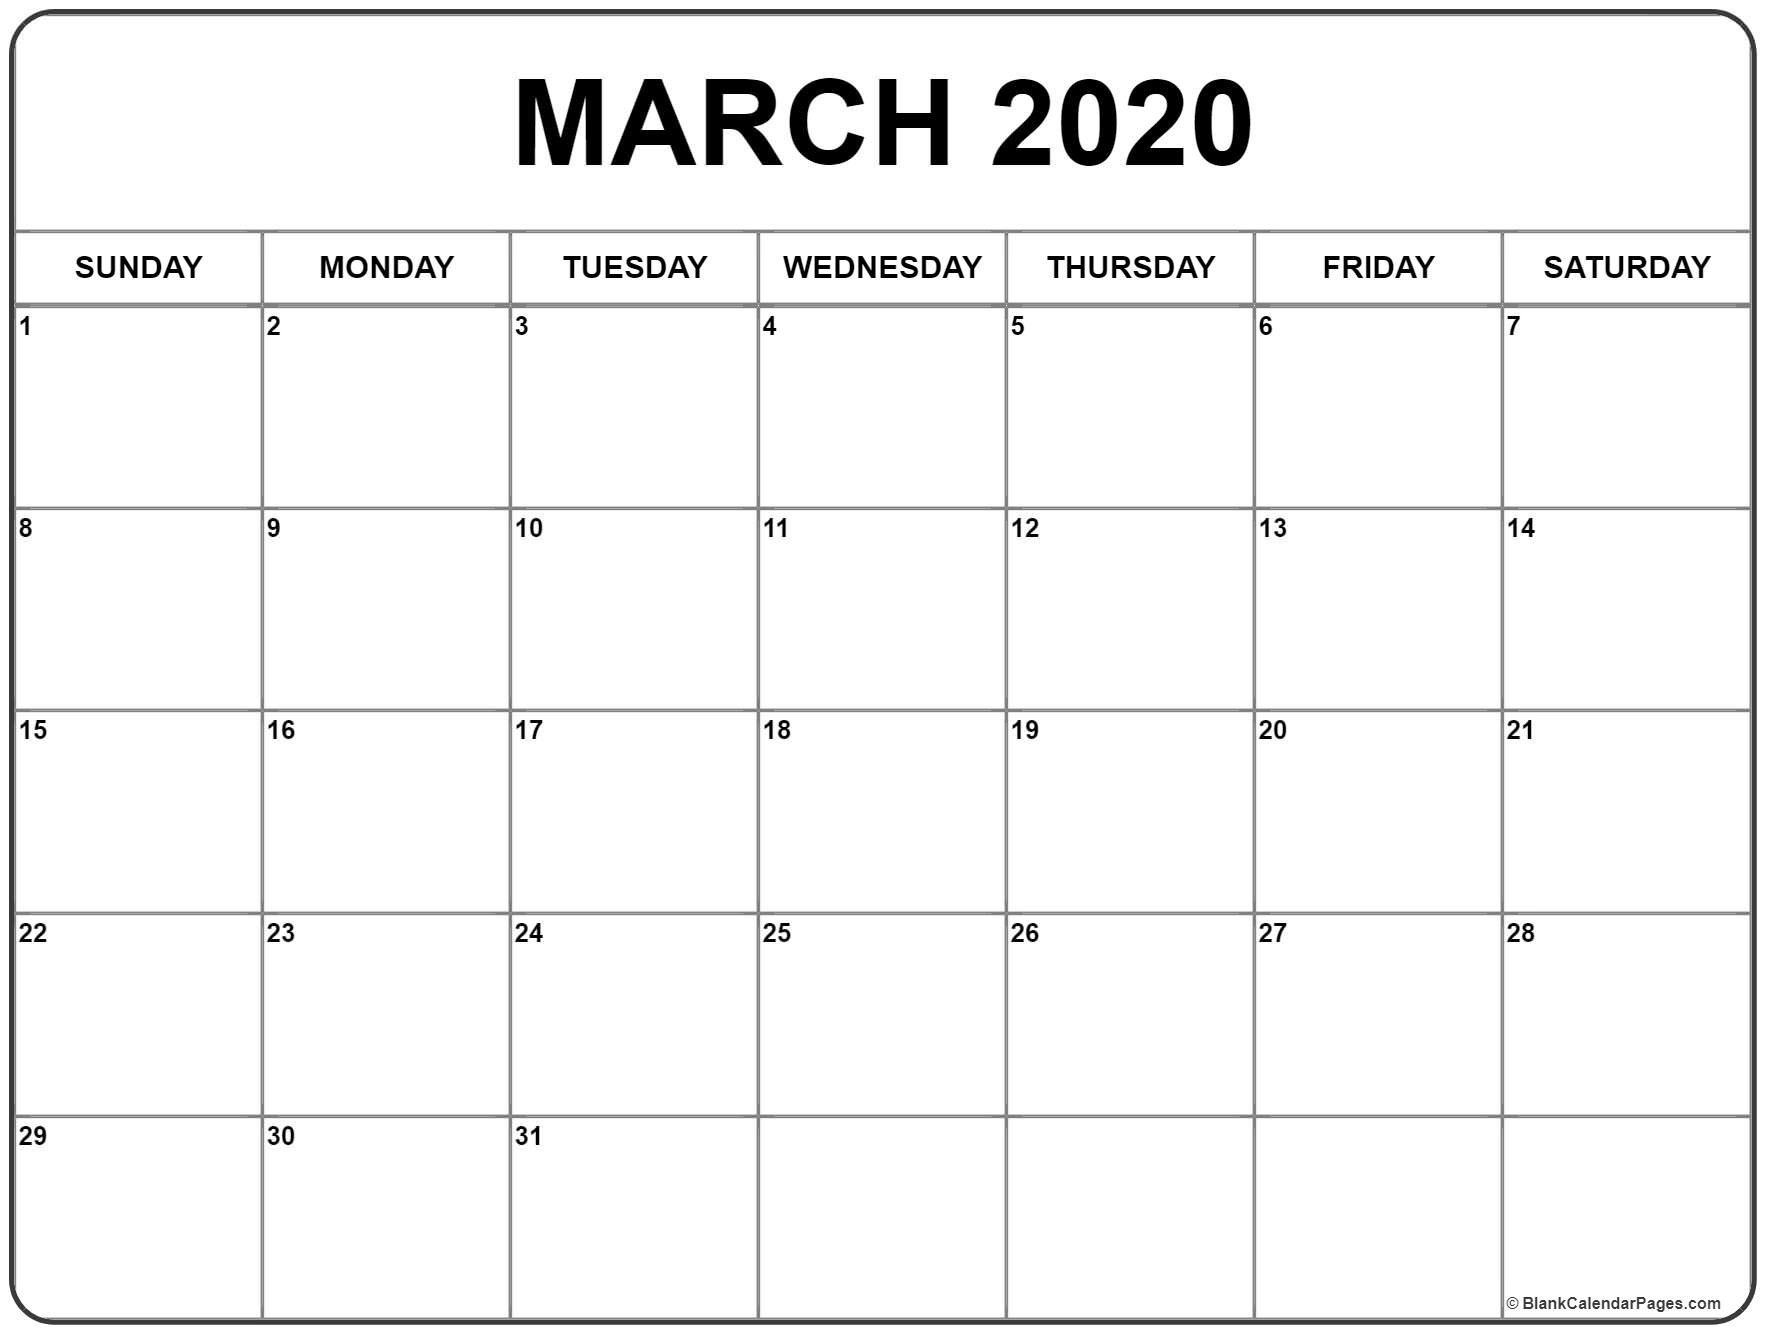 March 2020 Calendar | Free Printable Monthly Calendars pertaining to Writing Calendar For 2020